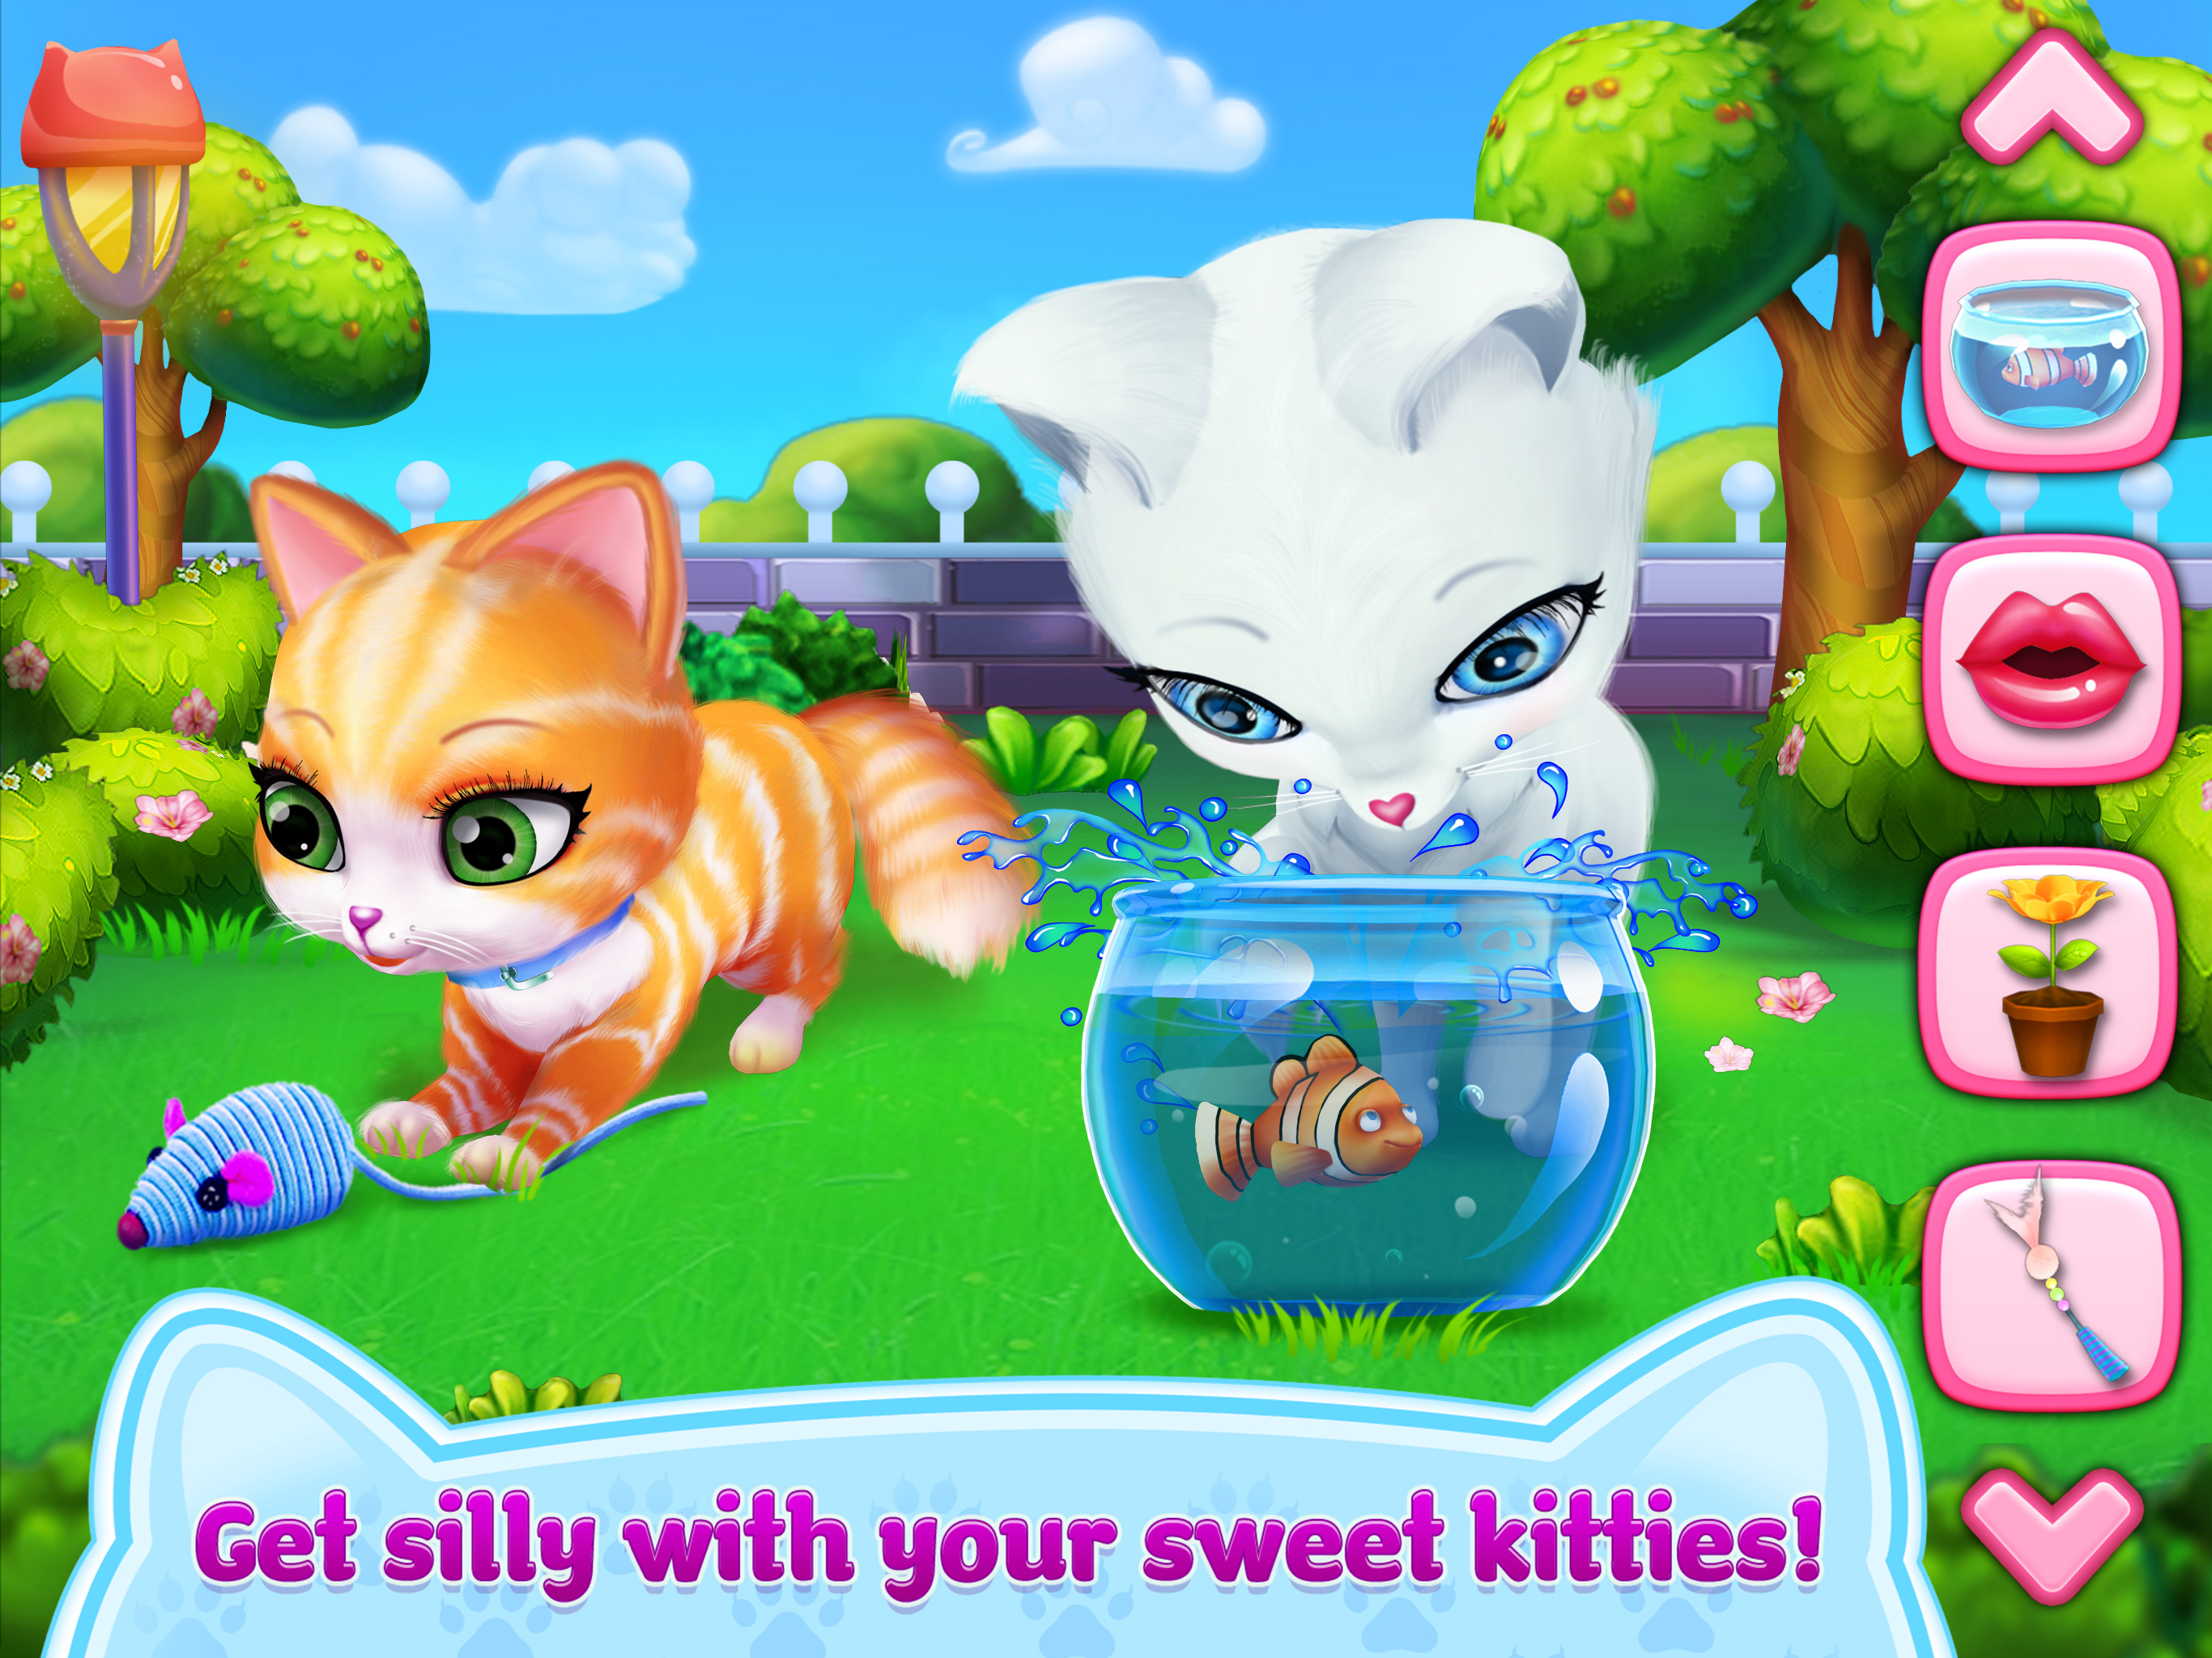 Kitty Cat Love - Revenue & Download estimates - Apple App Store - US